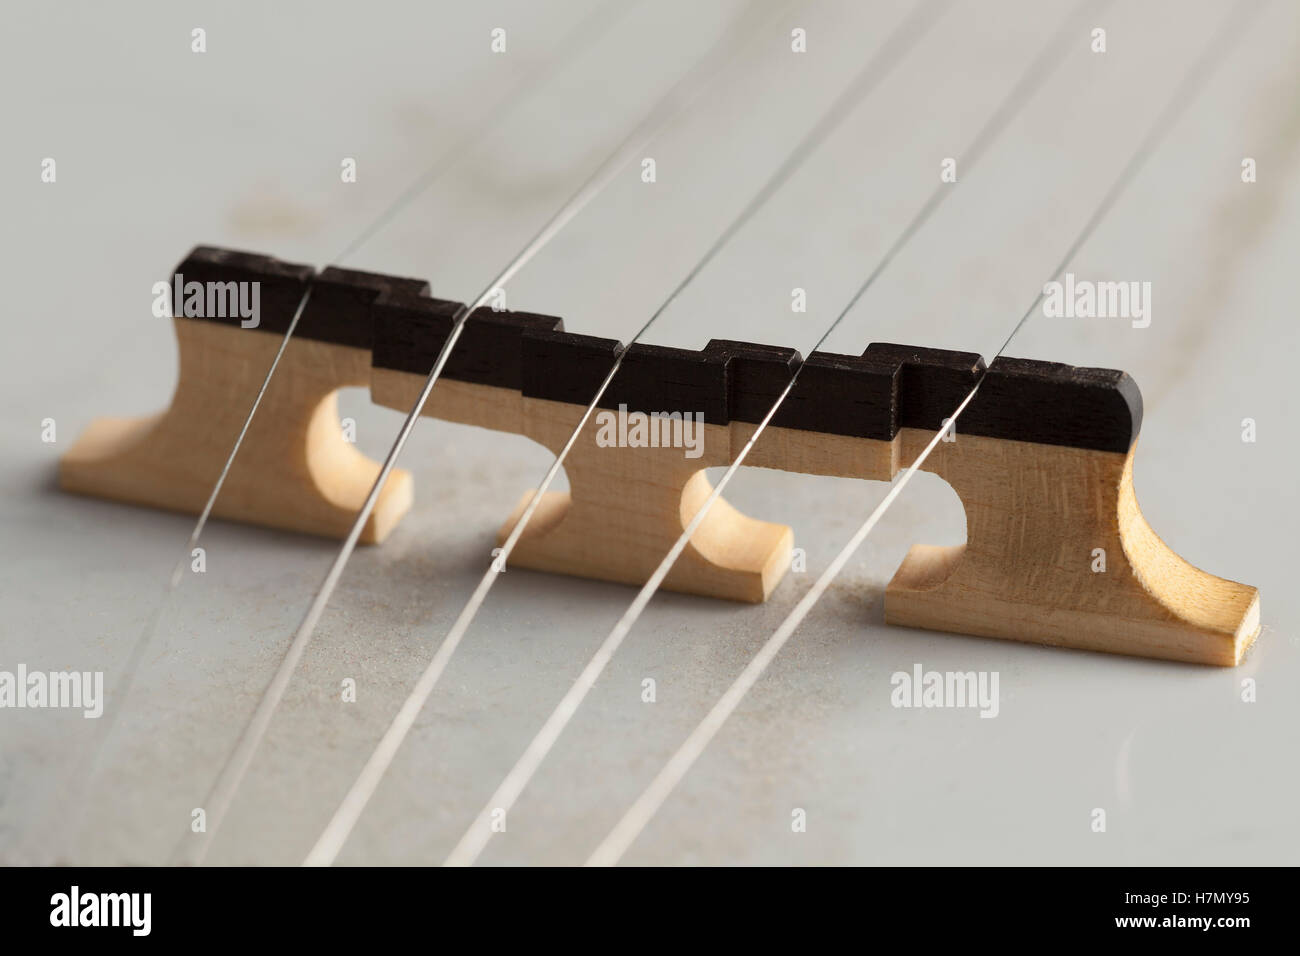 Banjo bridge close up - Stock Image